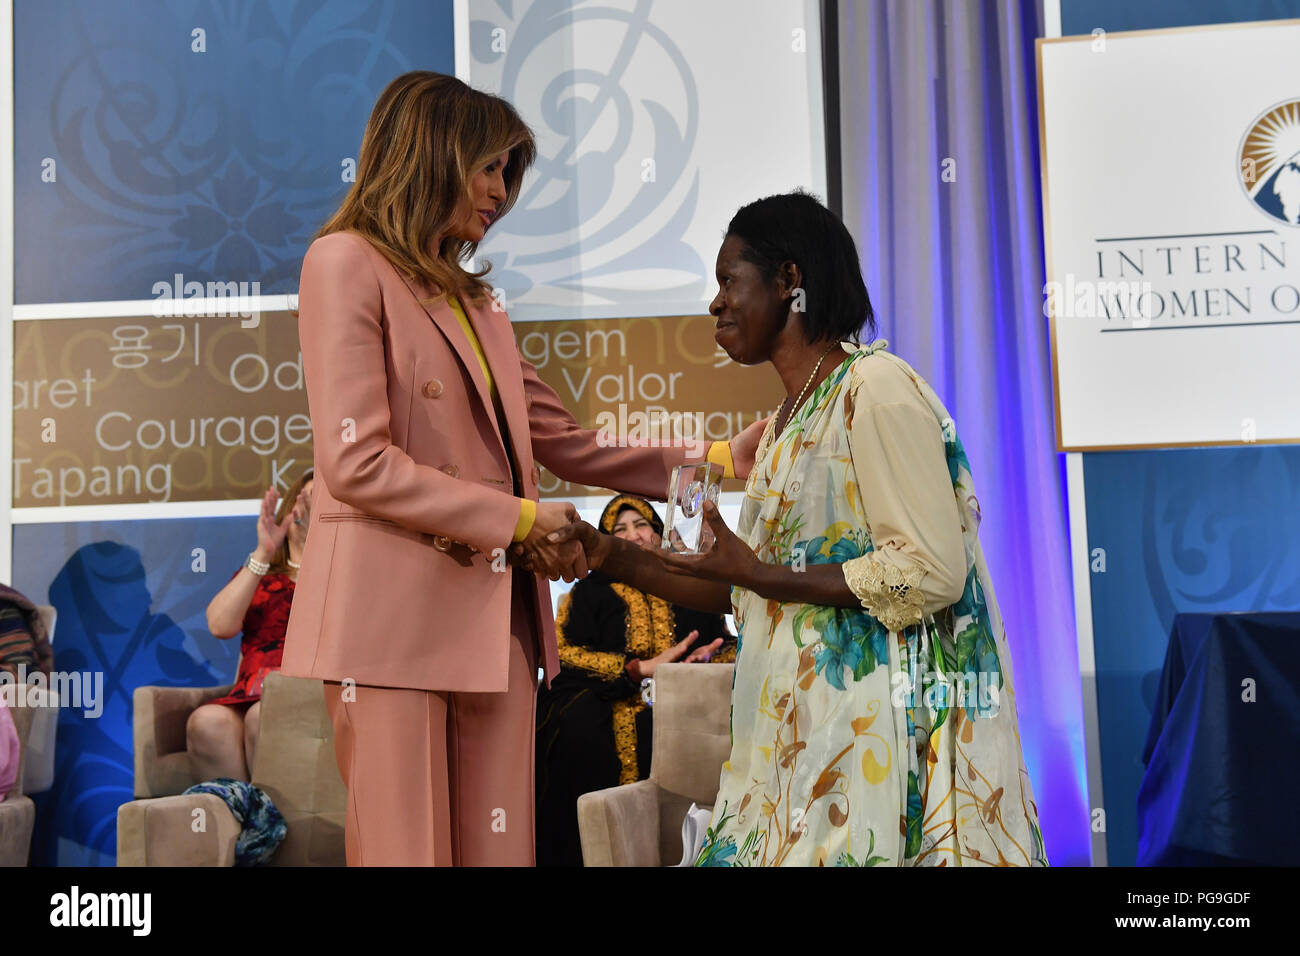 First Lady of the United States Melania Trump presents the 2018 International Women of Courage (IWOC) Award to Godelive Mukasarasi of Rwanda during a ceremony at the U.S. Department of State in Washington, D.C. on March 23, 2018. Stock Photo